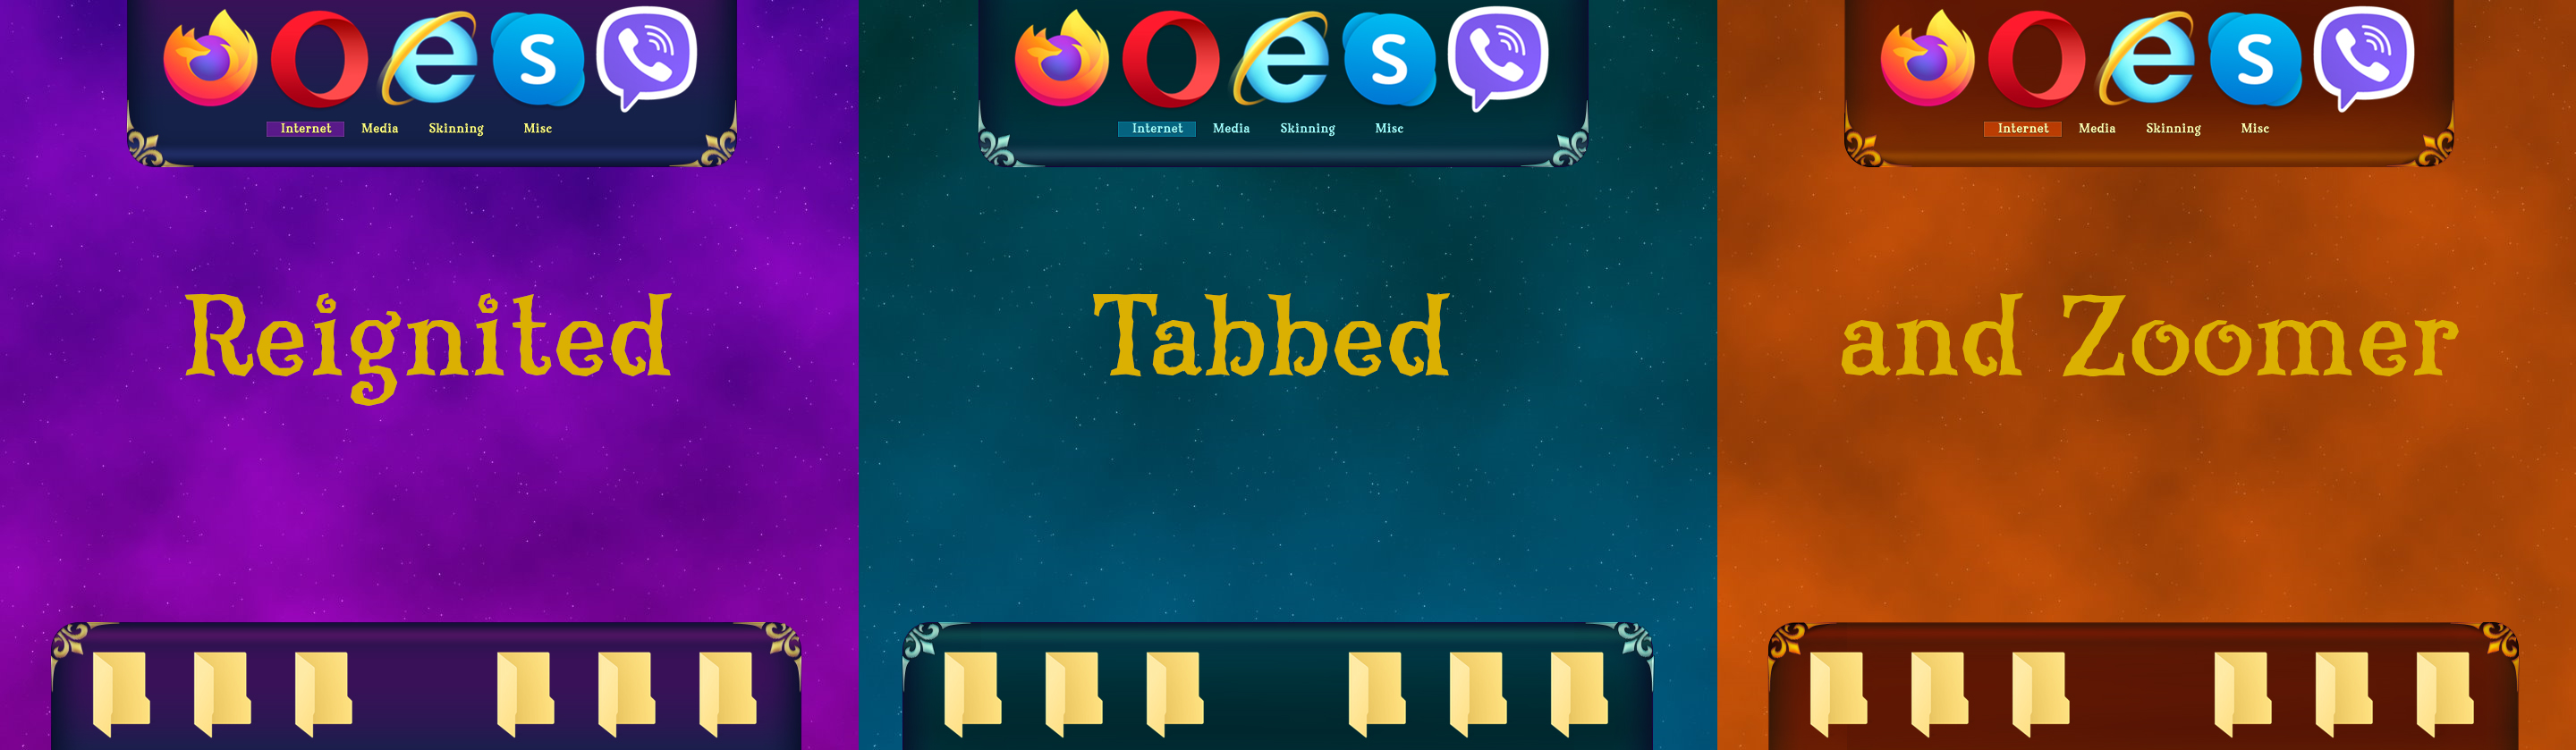 Reignited Tabbed and Zoomer